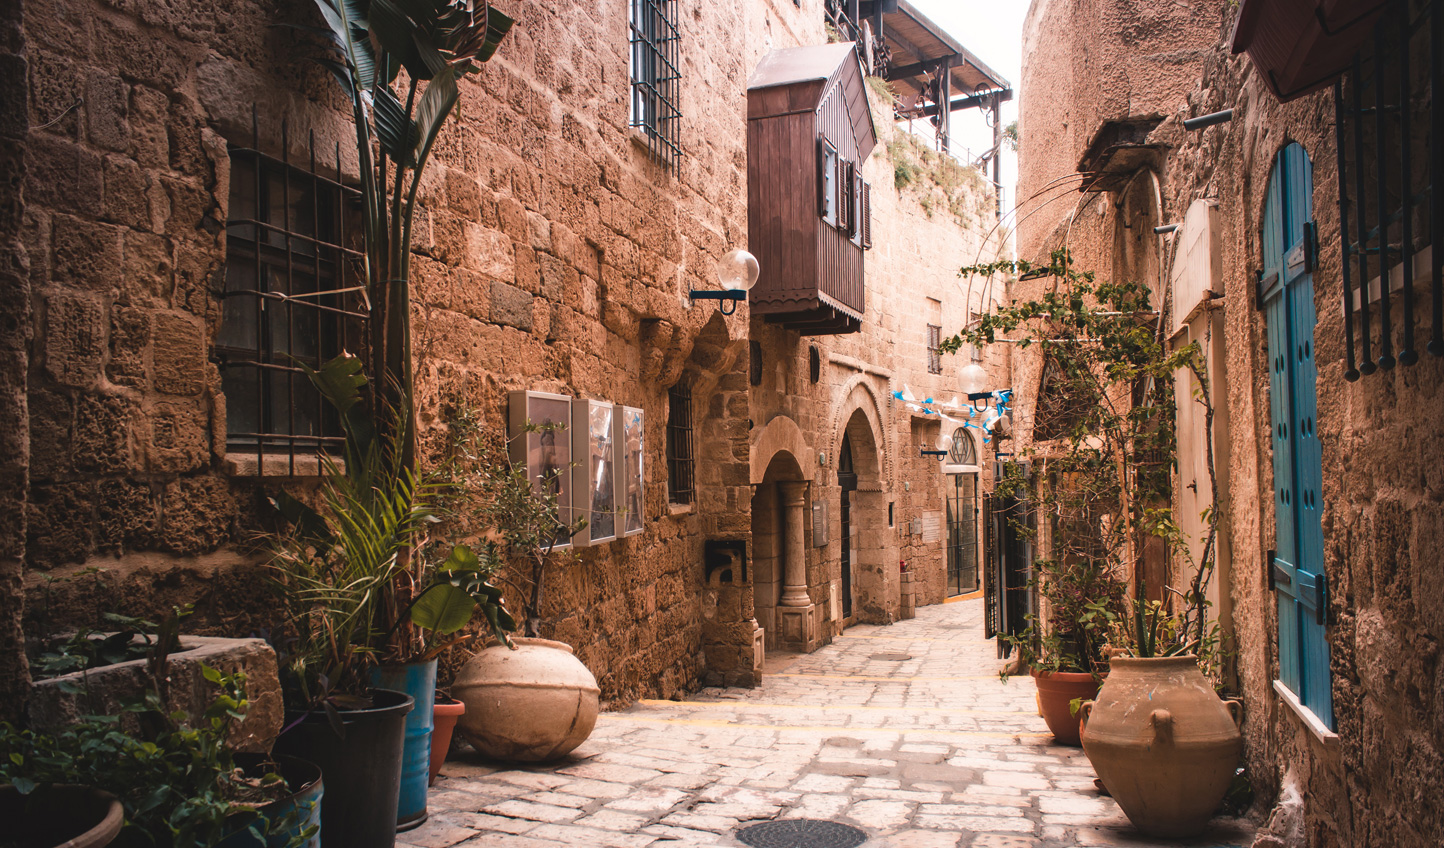 Charming narrow winding streets and cobbled lanes that will take you into the heart of the Old City of Jerusalem